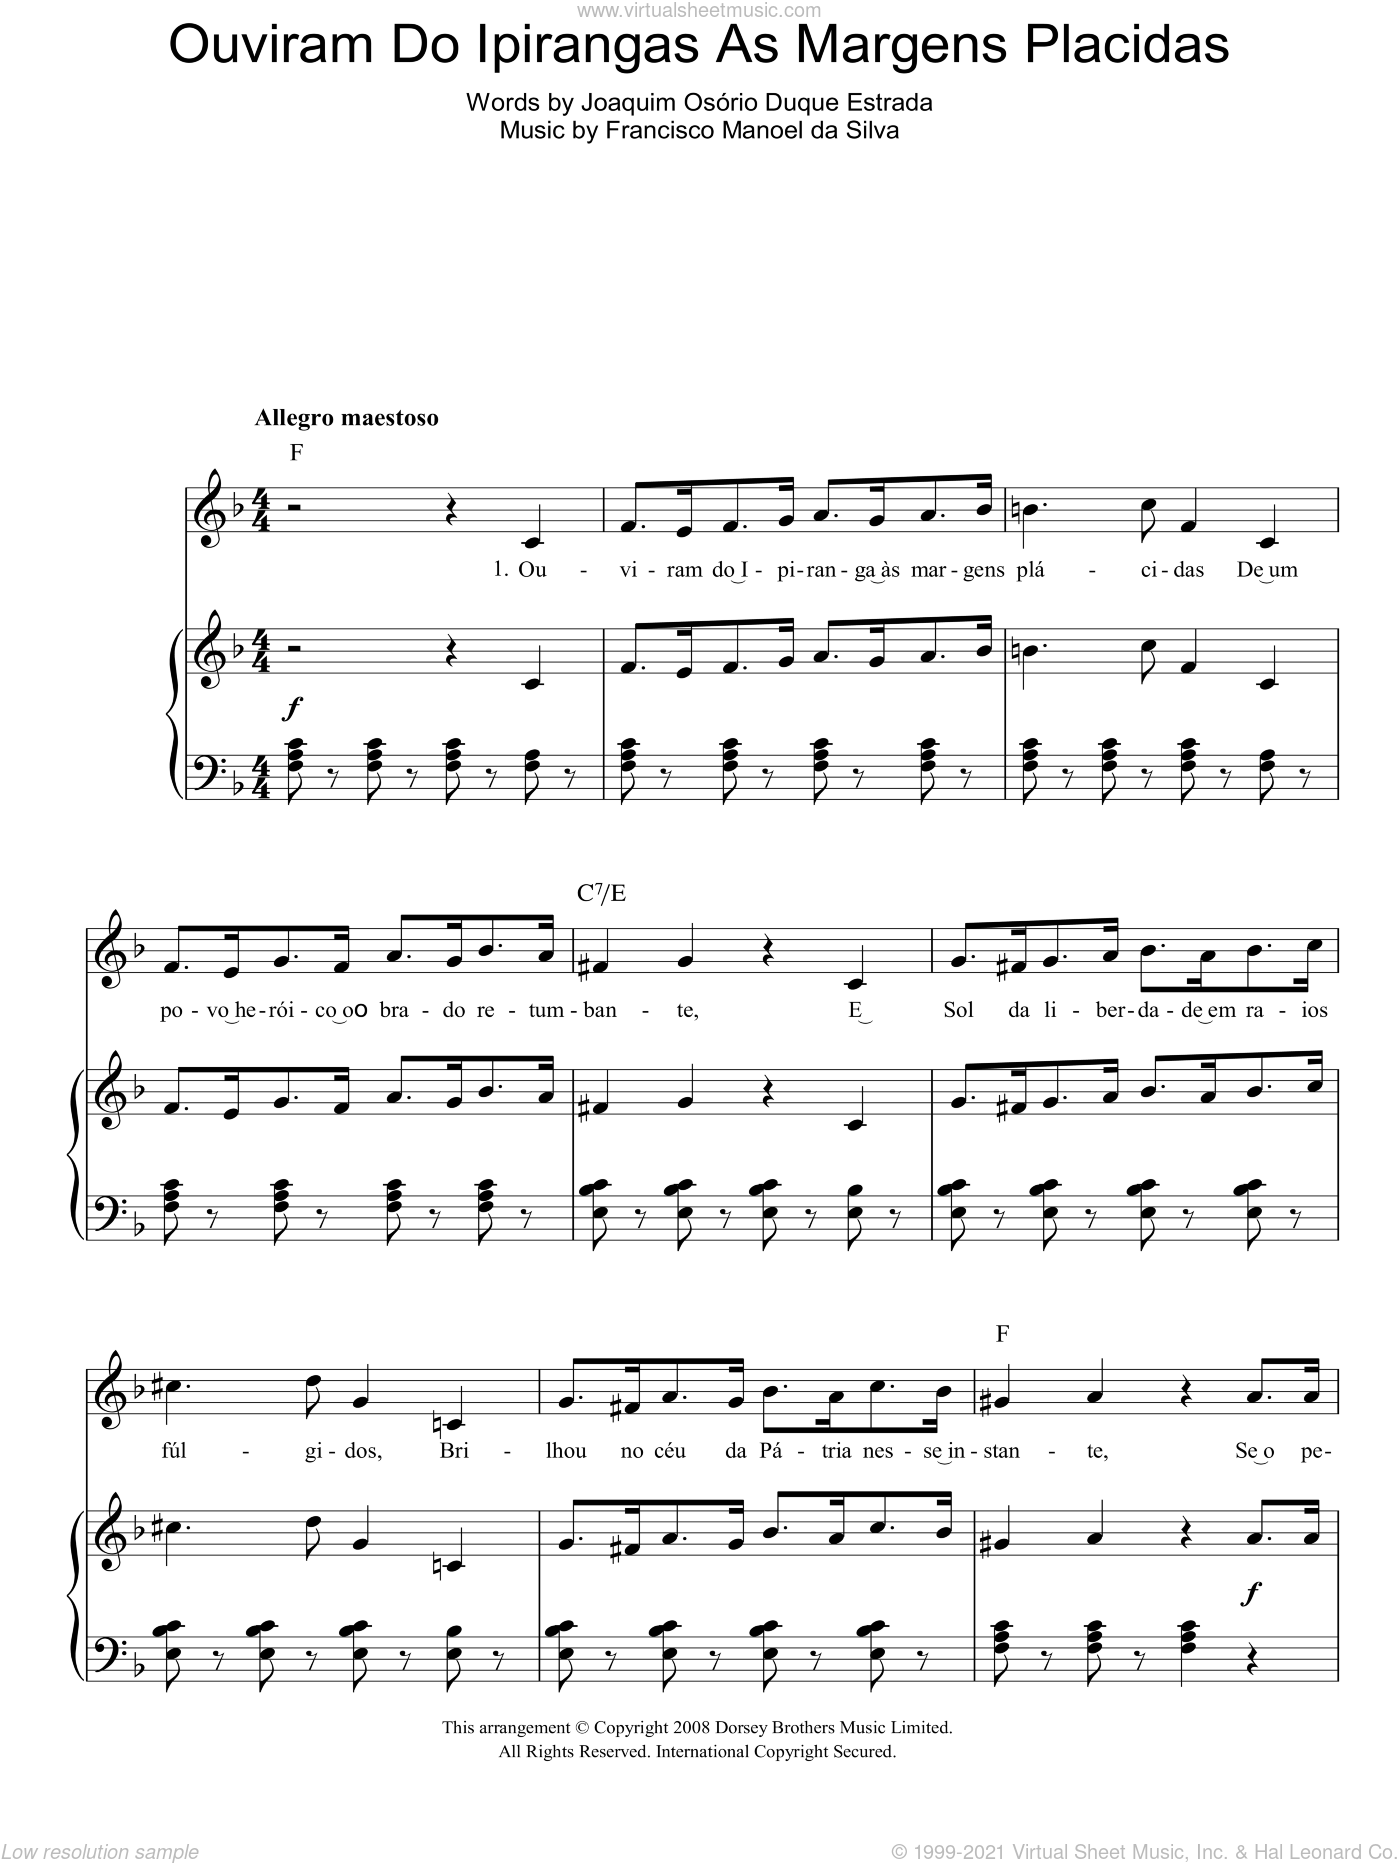 Ouviram Do Ipirangas As Margens Placidas (Brazilian National Anthem) sheet music for voice, piano or guitar by Joaquim Osorio Duque Estrada